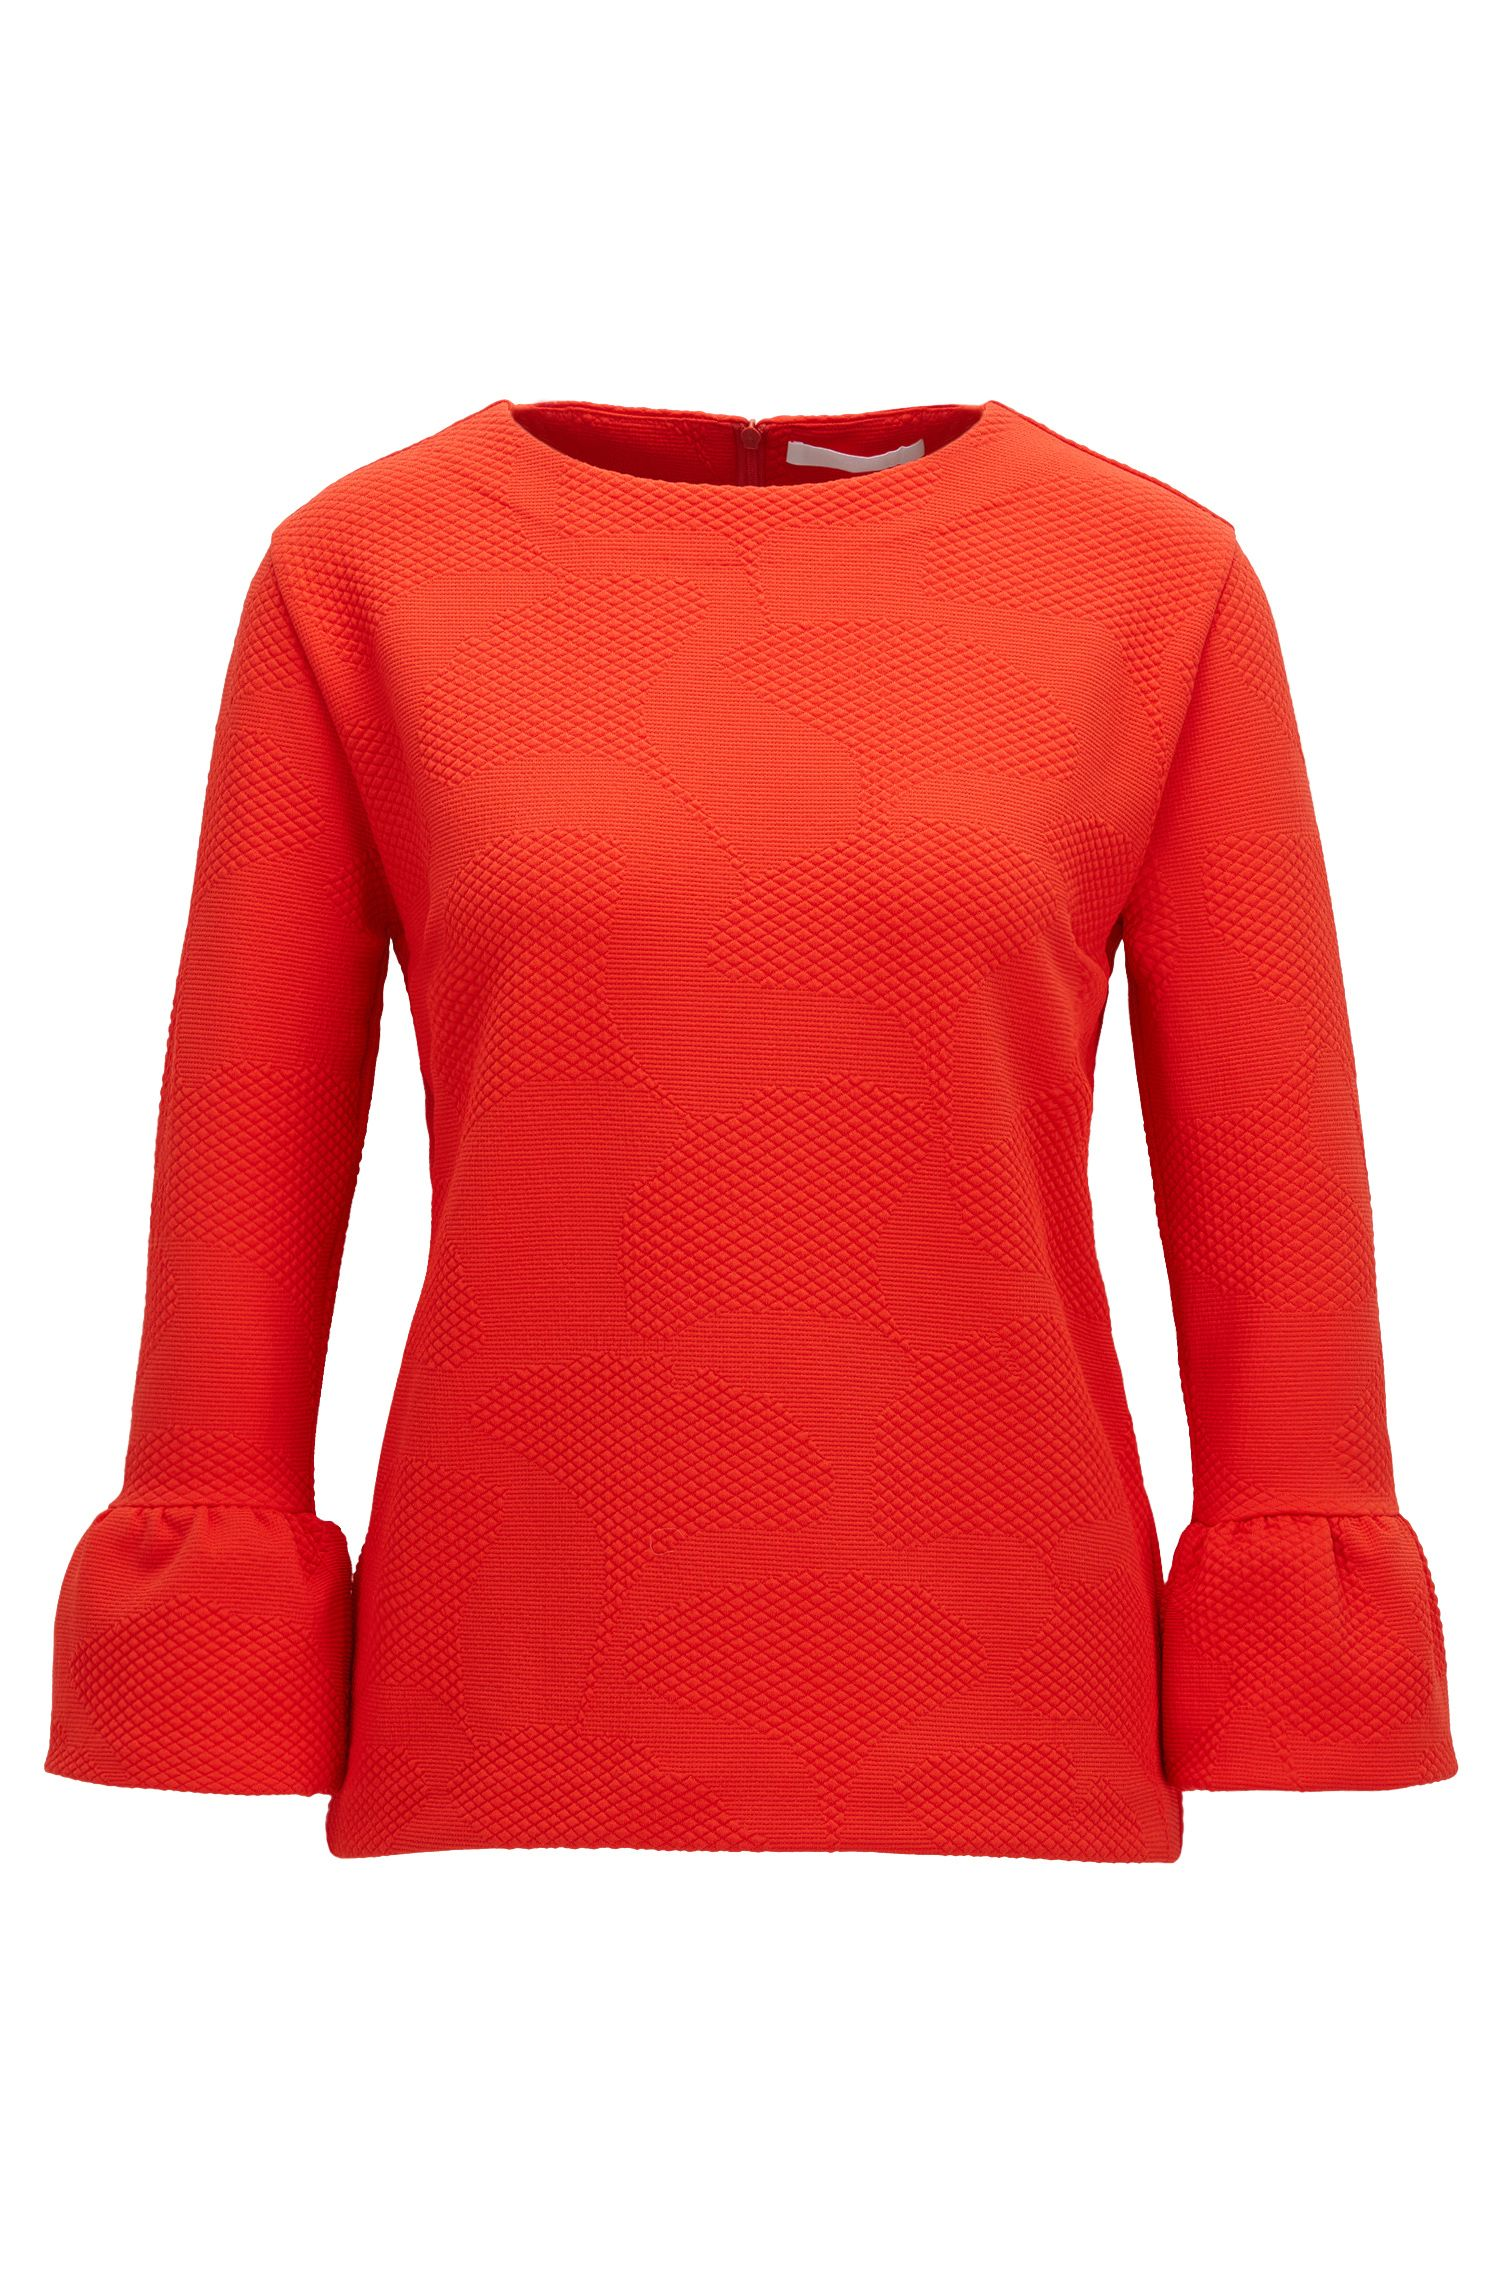 Crew-neck top in structured stretch fabric